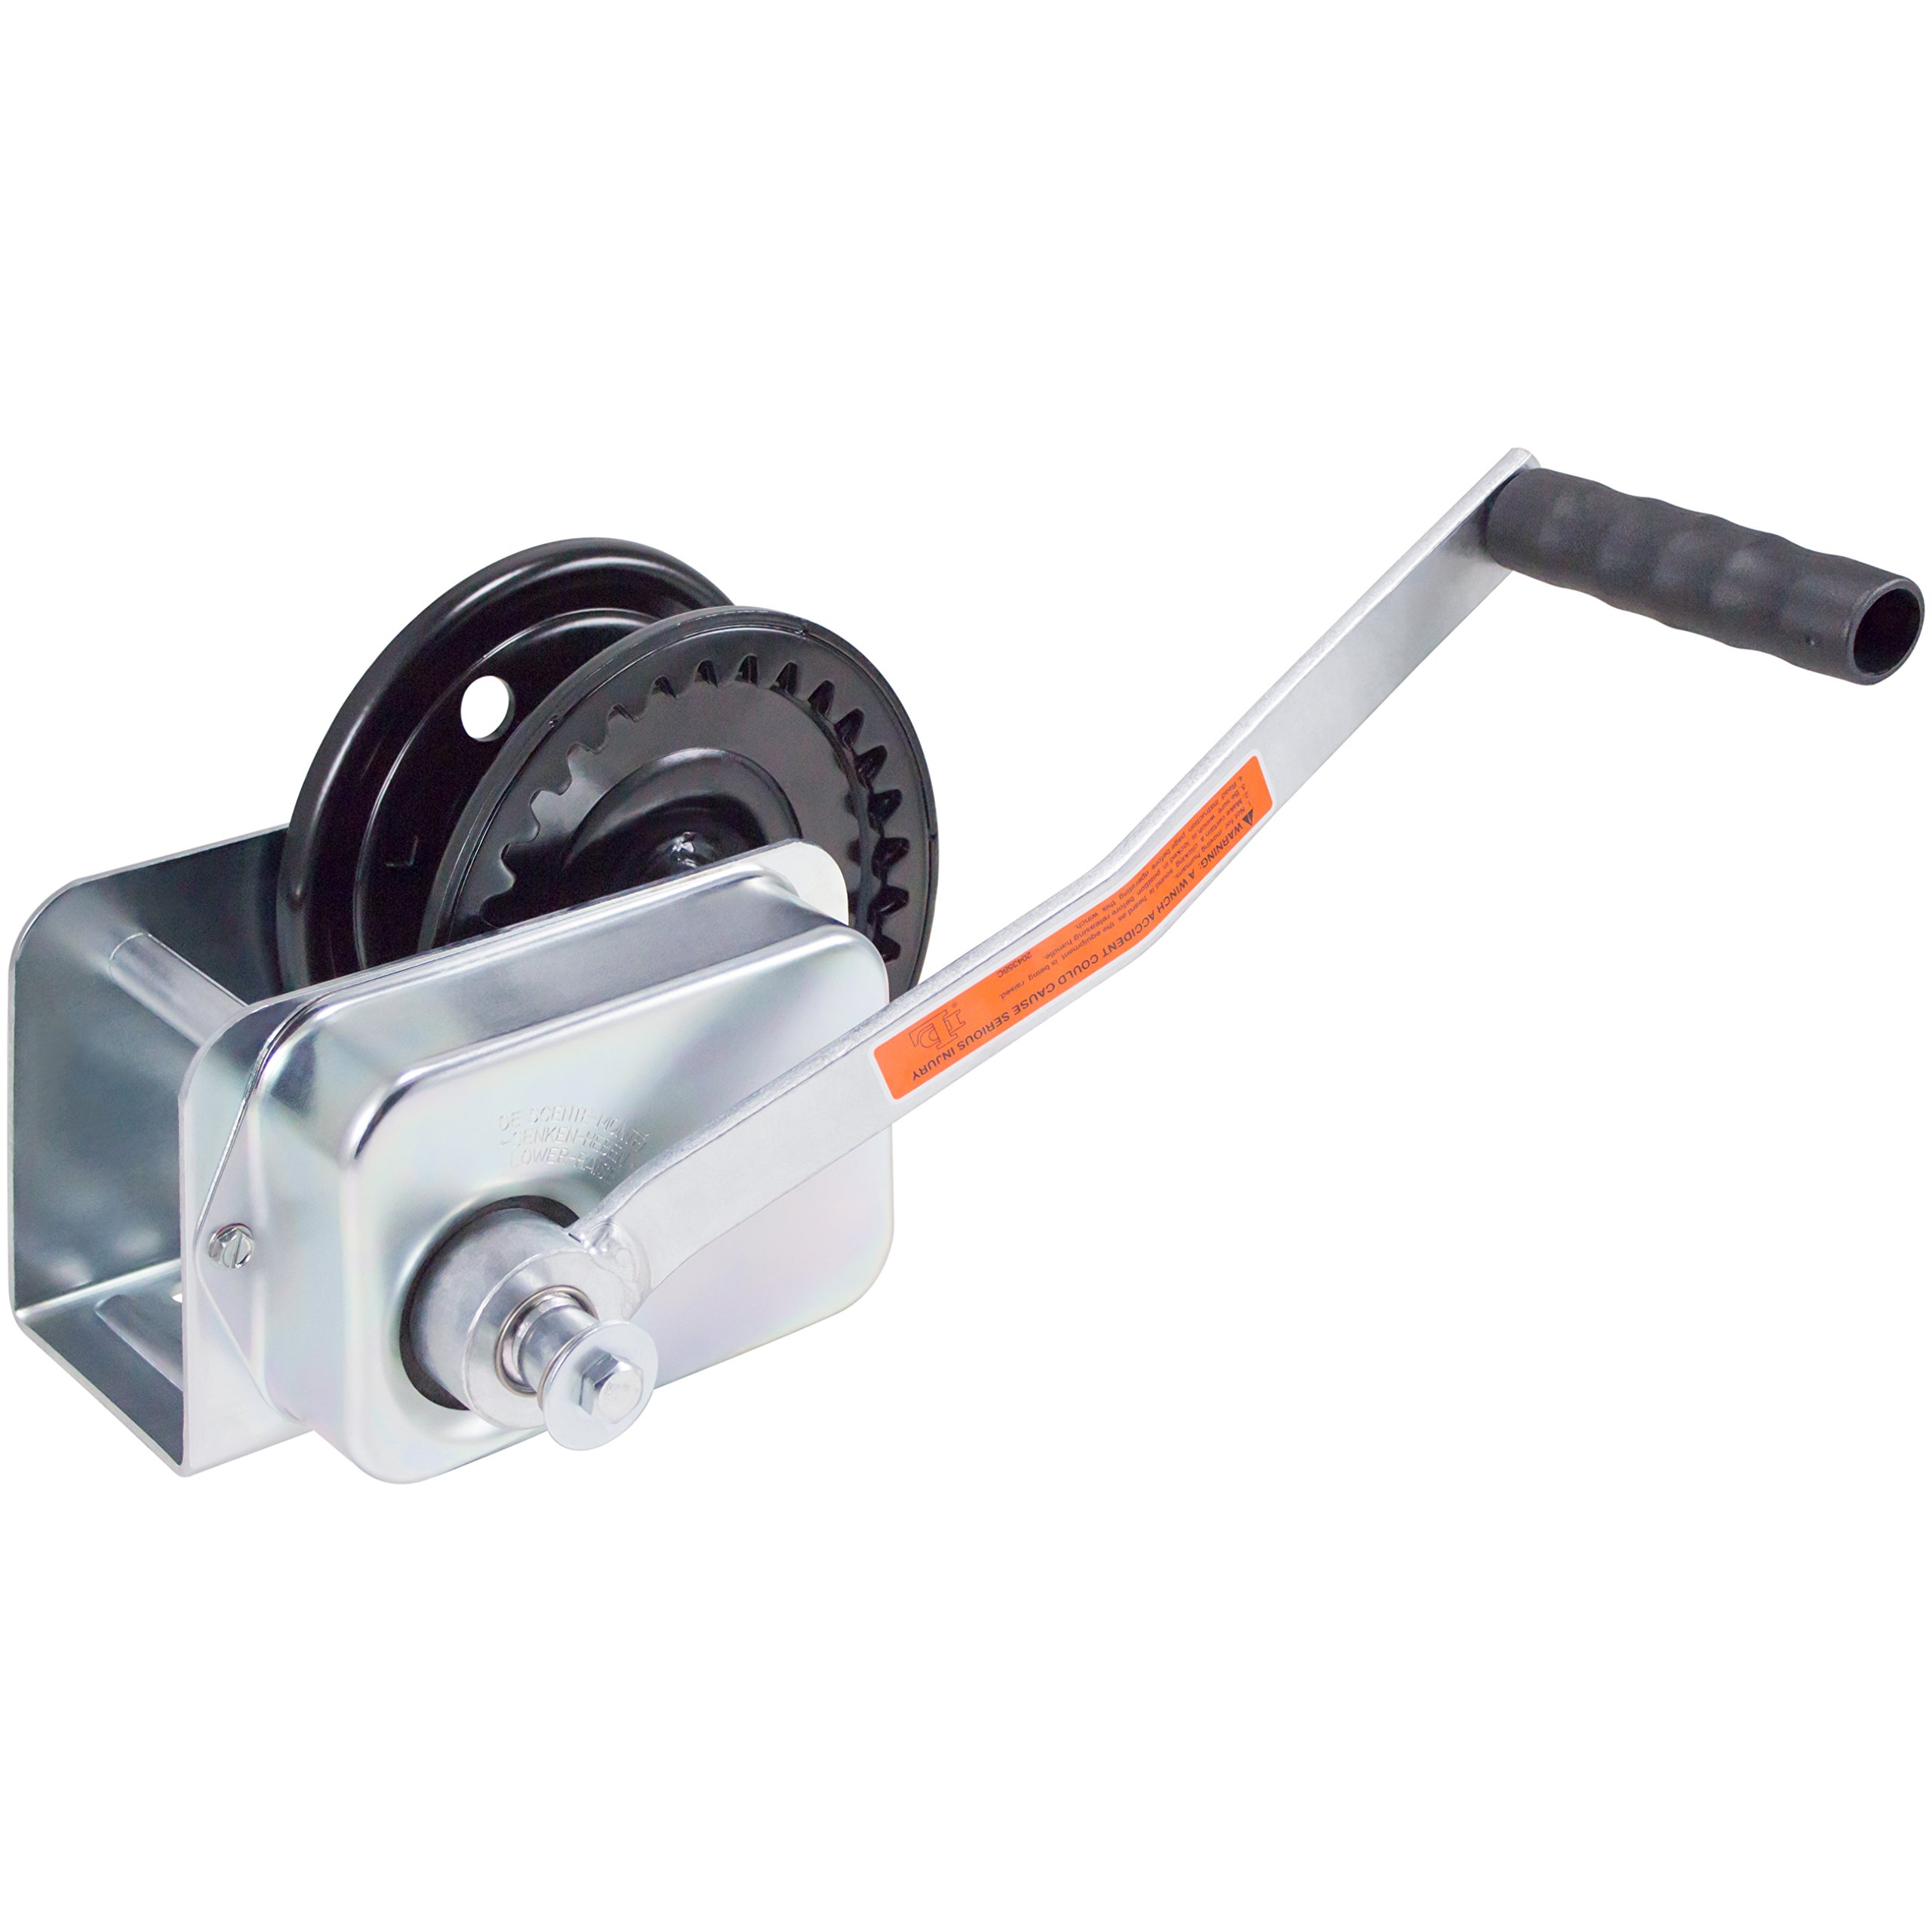 Dutton-Lainson B1502 Brake Winch 1500 lb